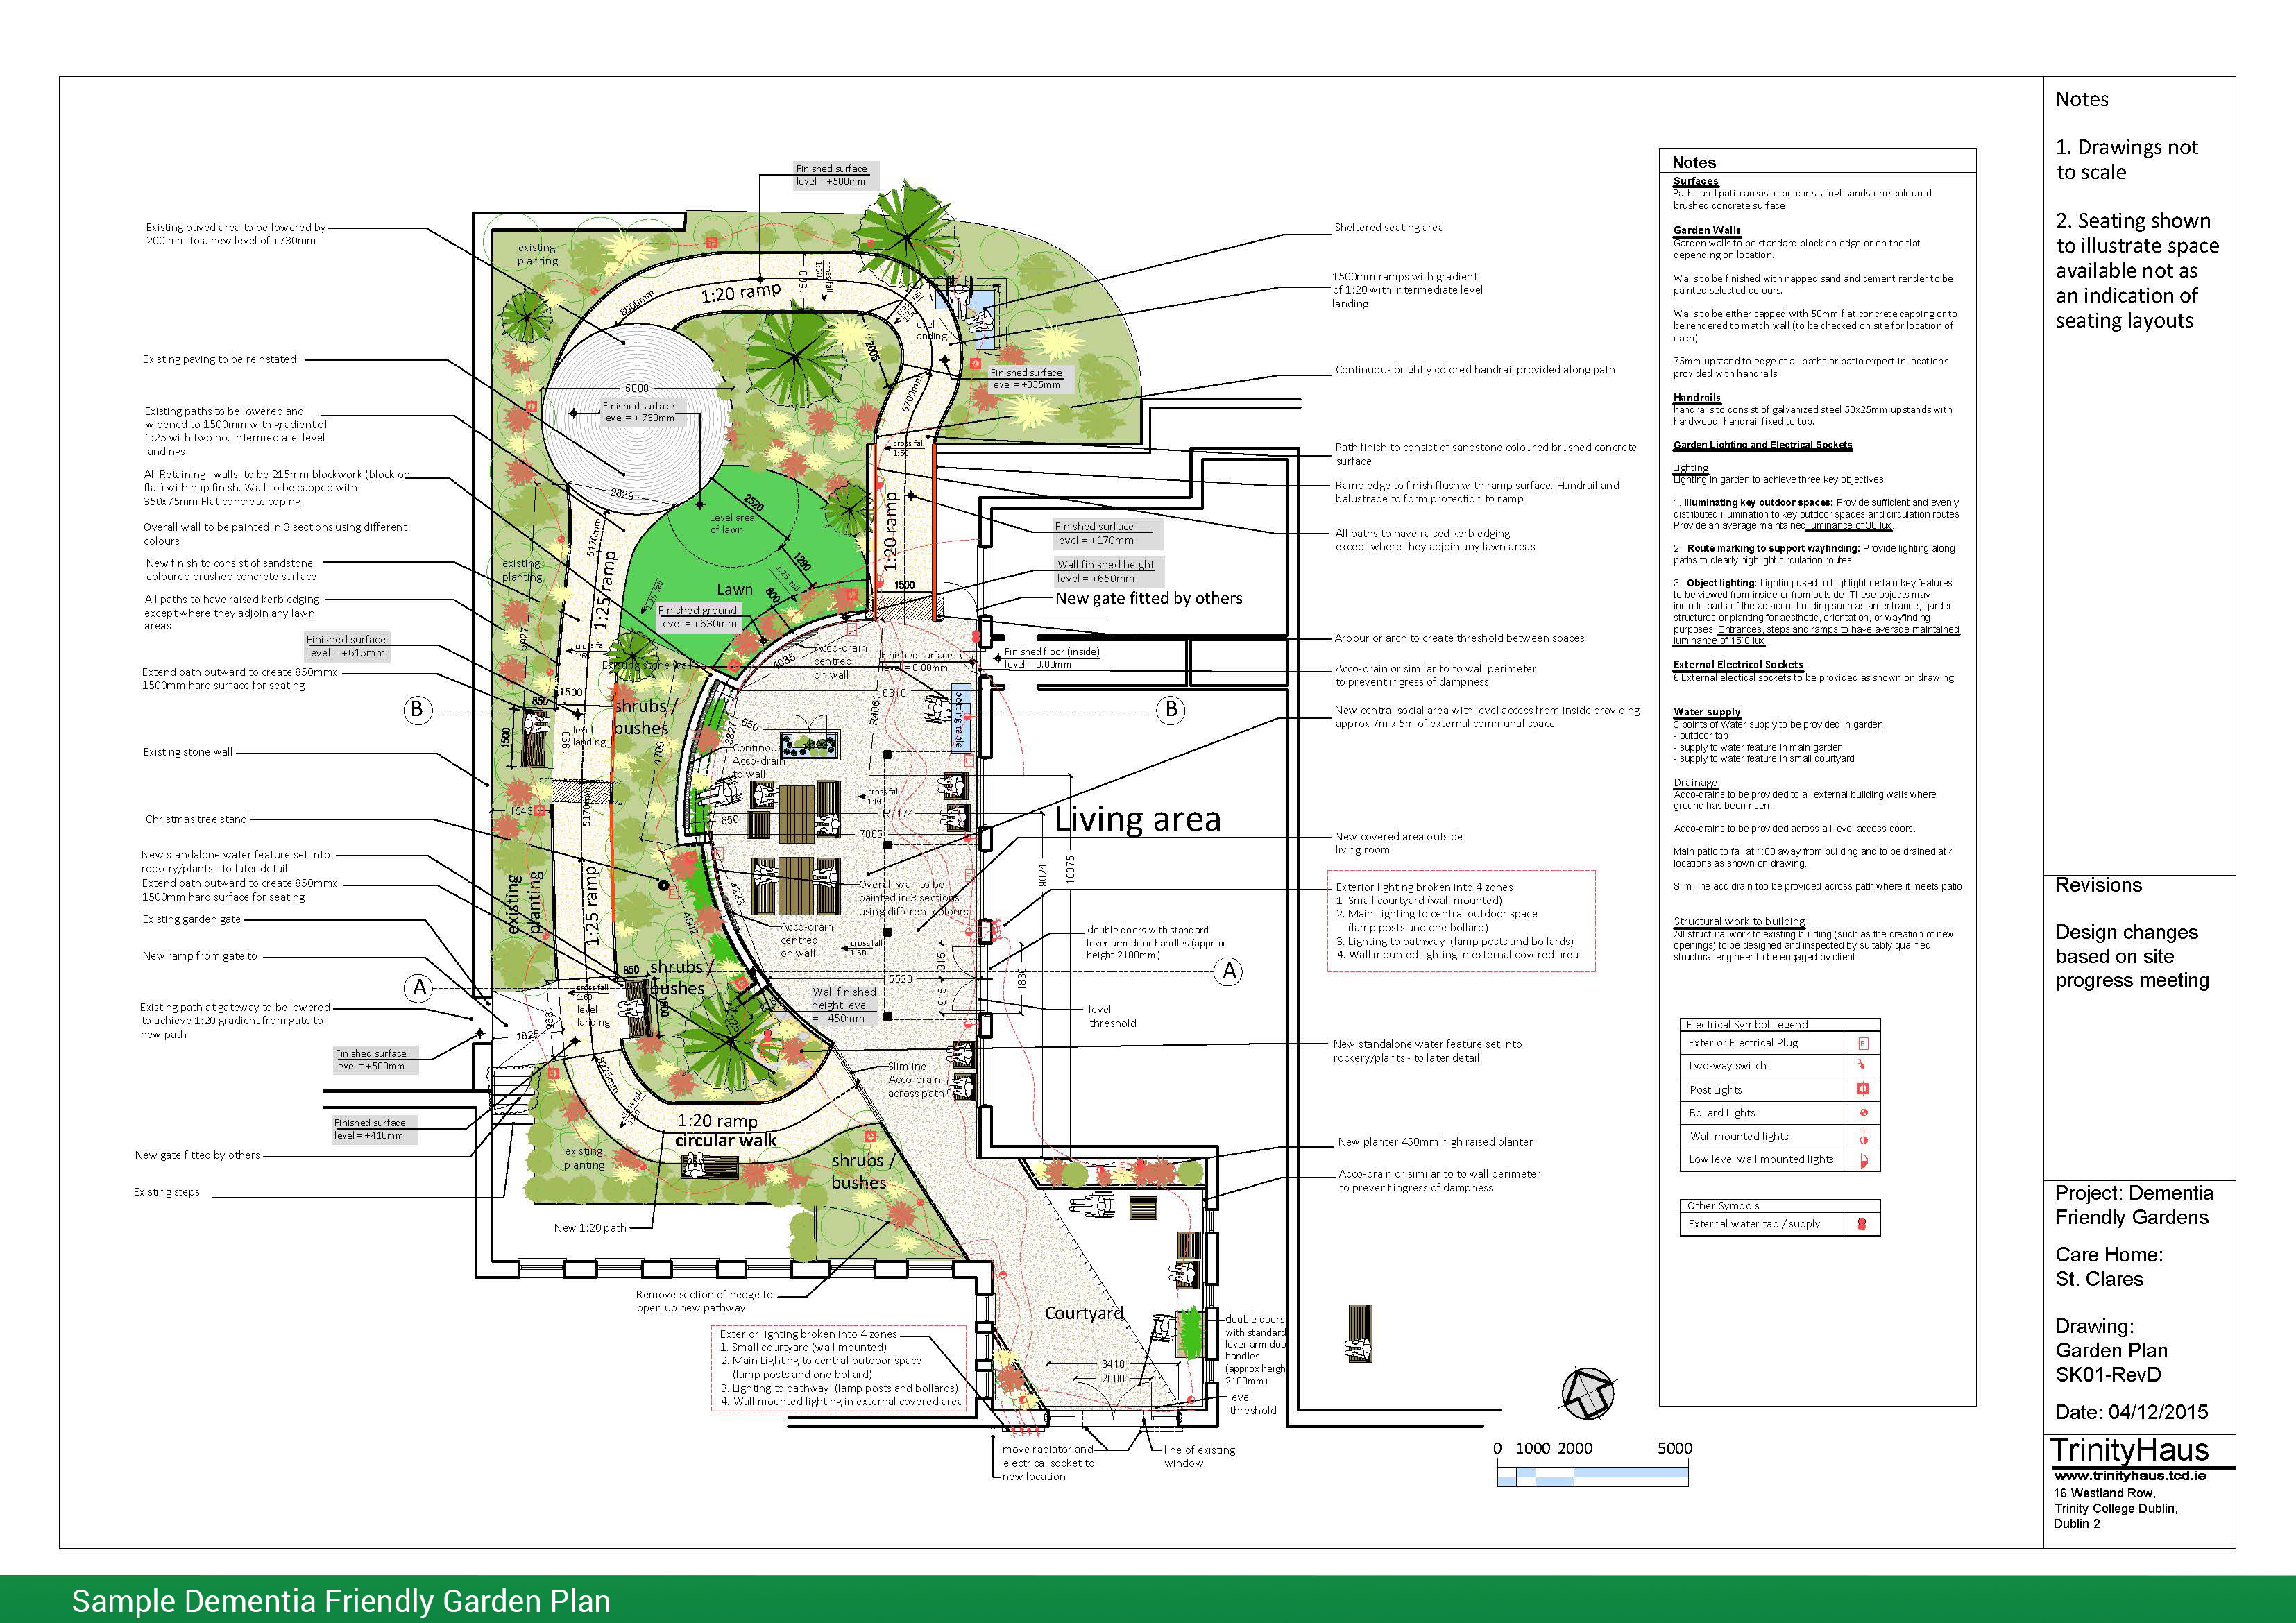 Sample Dementia Friendly Garden Plan